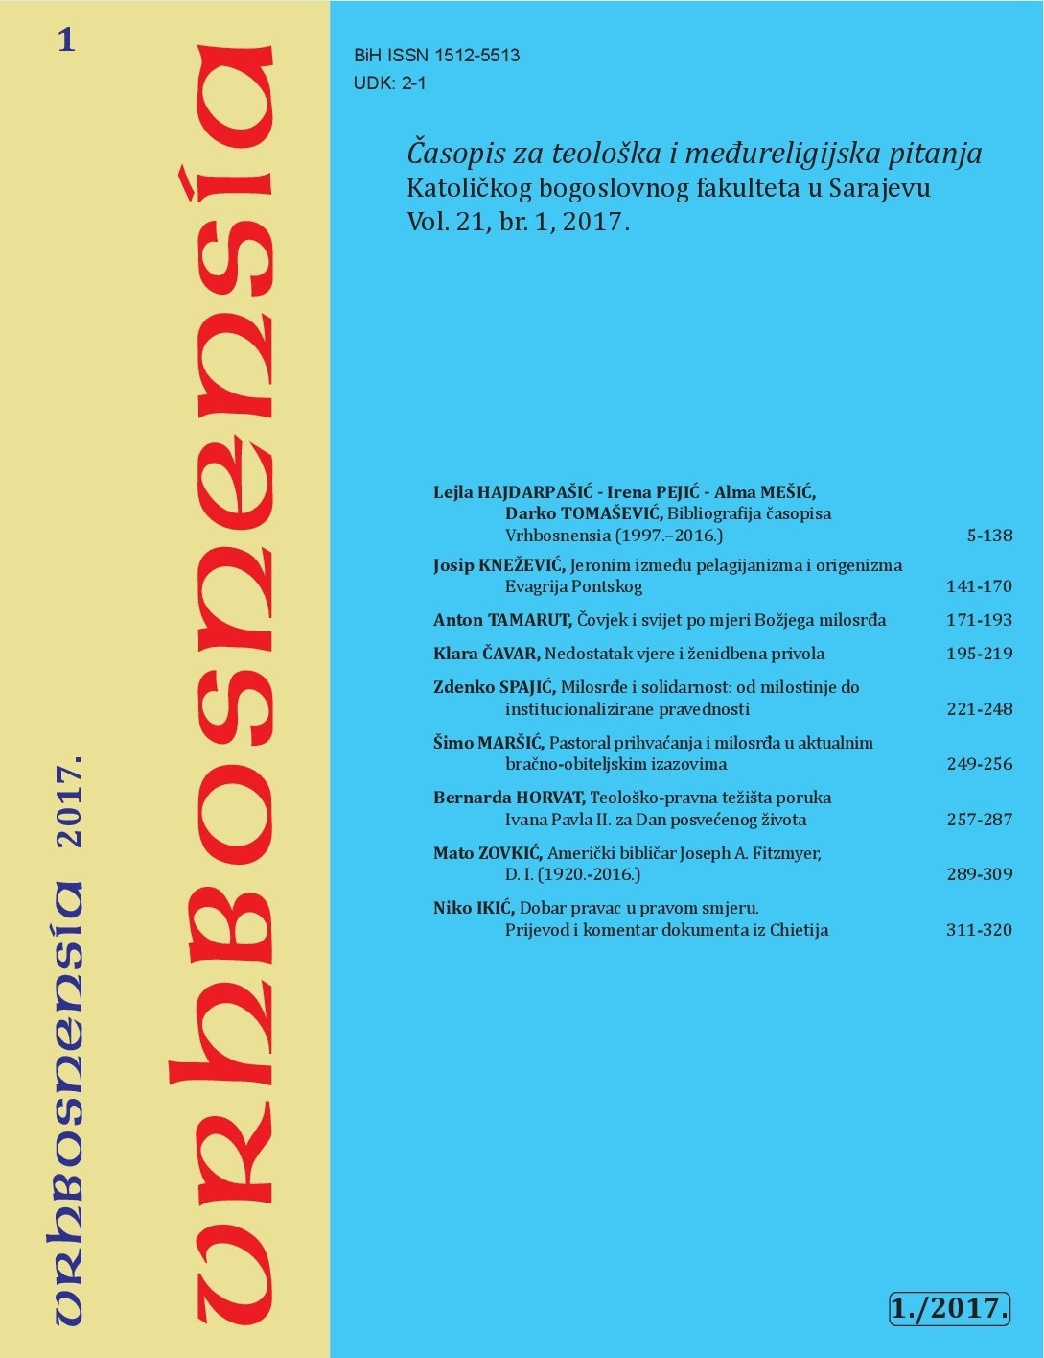 Bibliography of the journal Vrhbosnensia (1997 - 2016) Cover Image